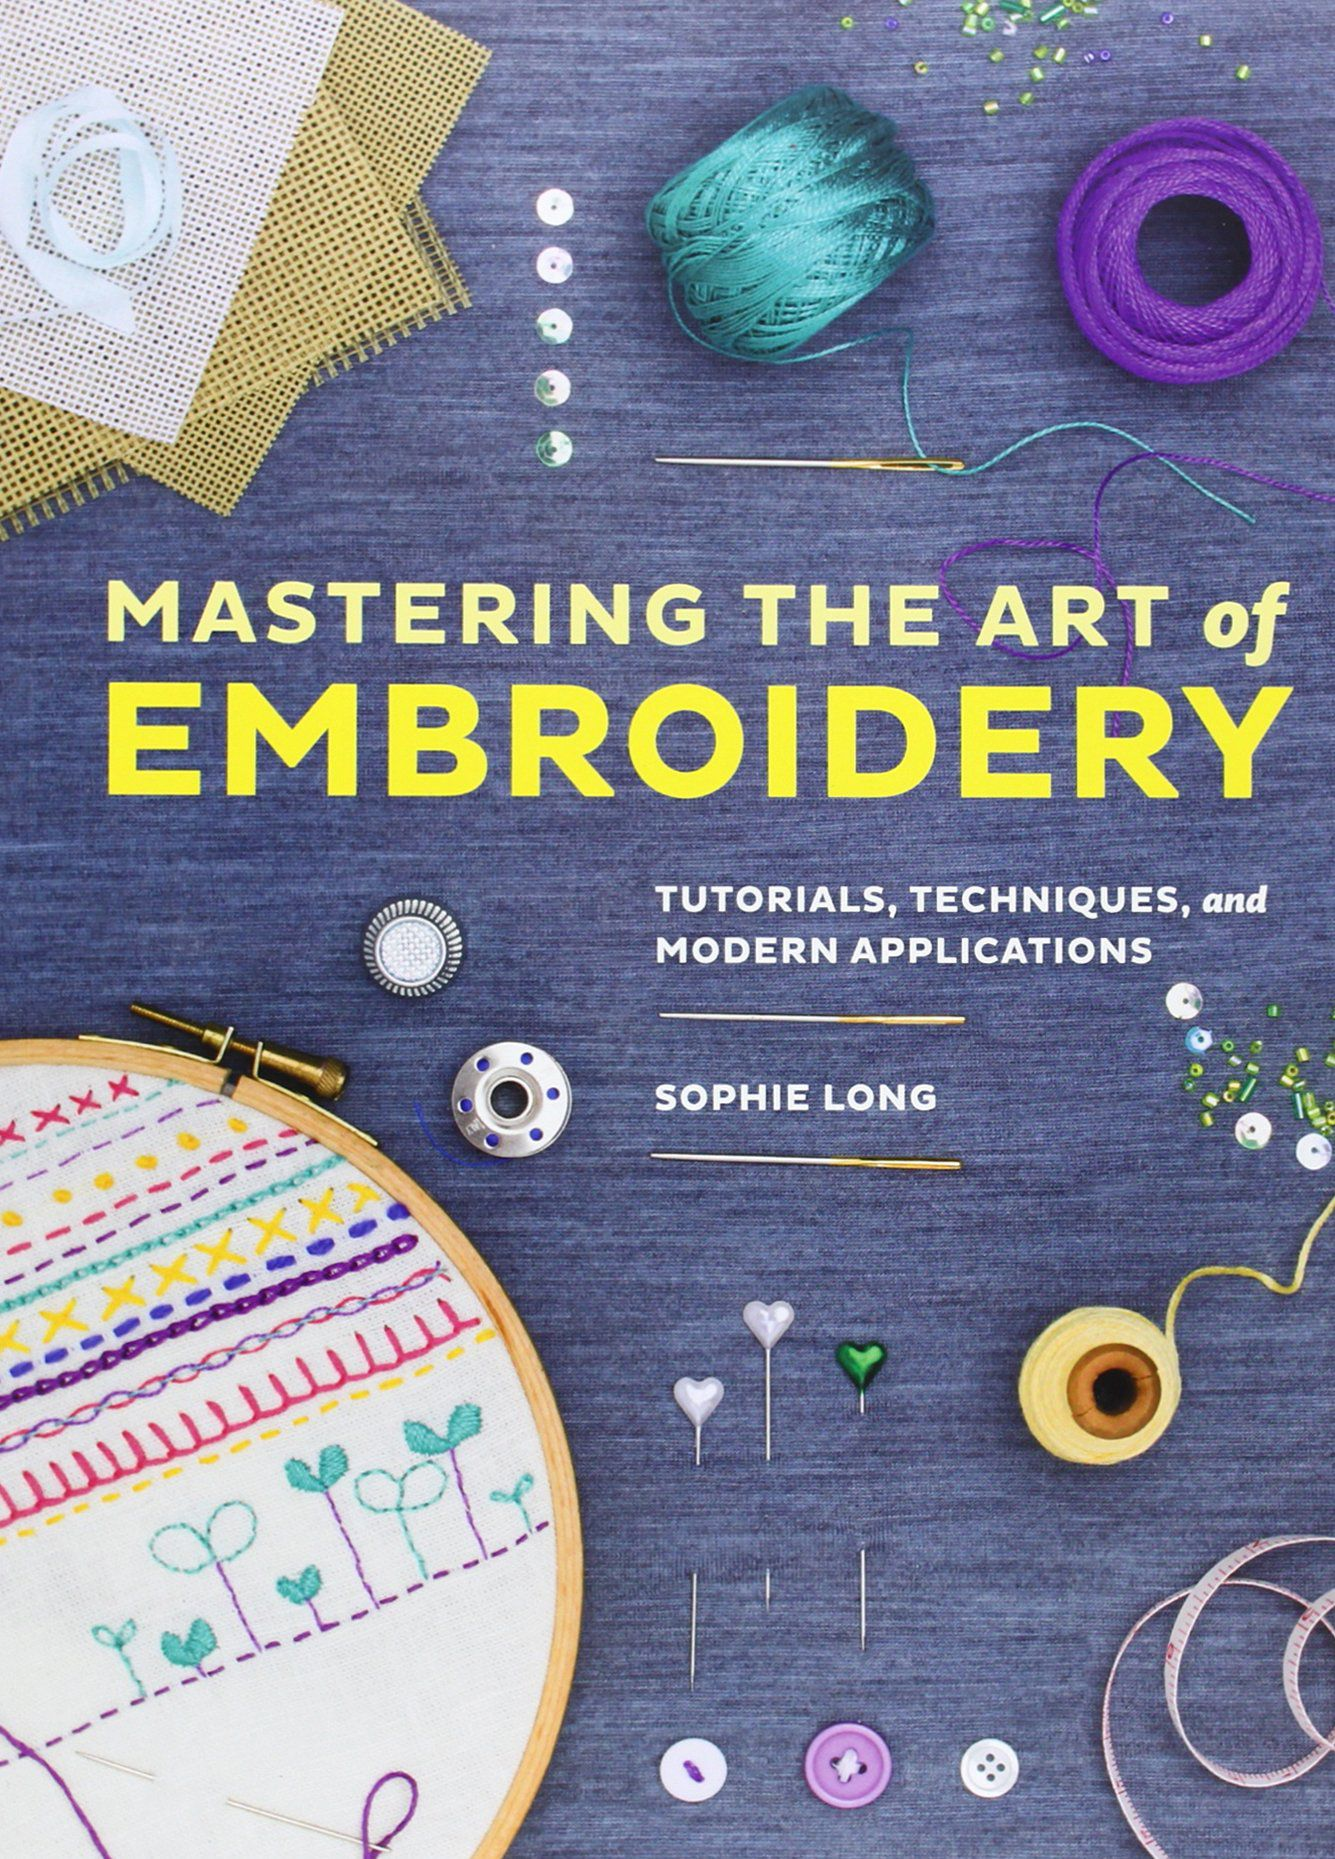 Book cover image for Mastering the Art of Embroidery